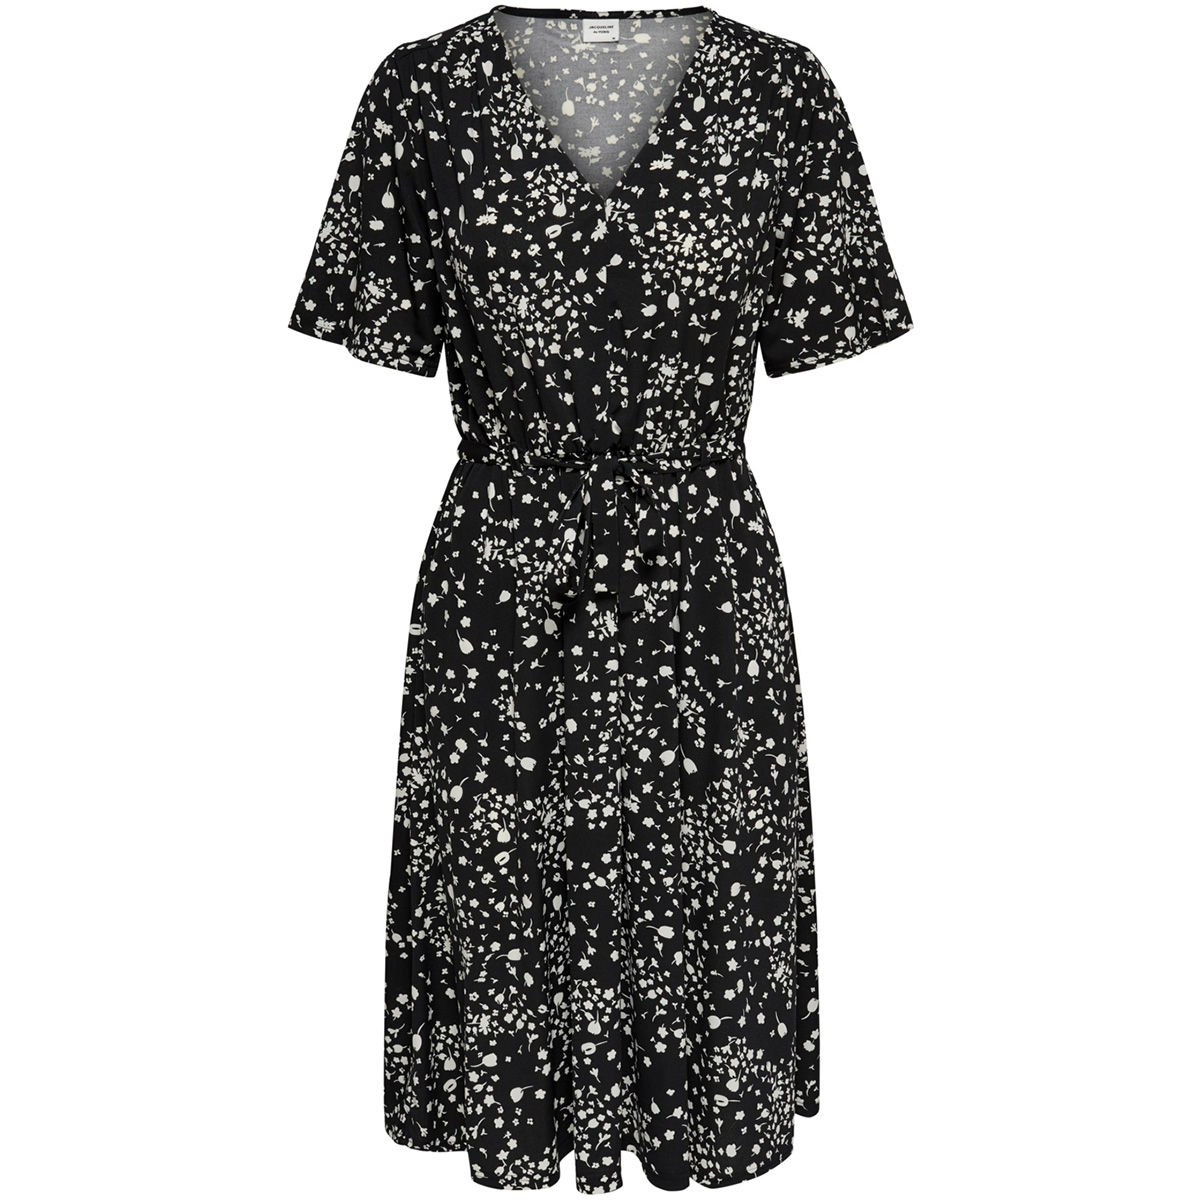 jdythea s/s dress jrs 15176806 jacqueline de yong jurk black/flower aop